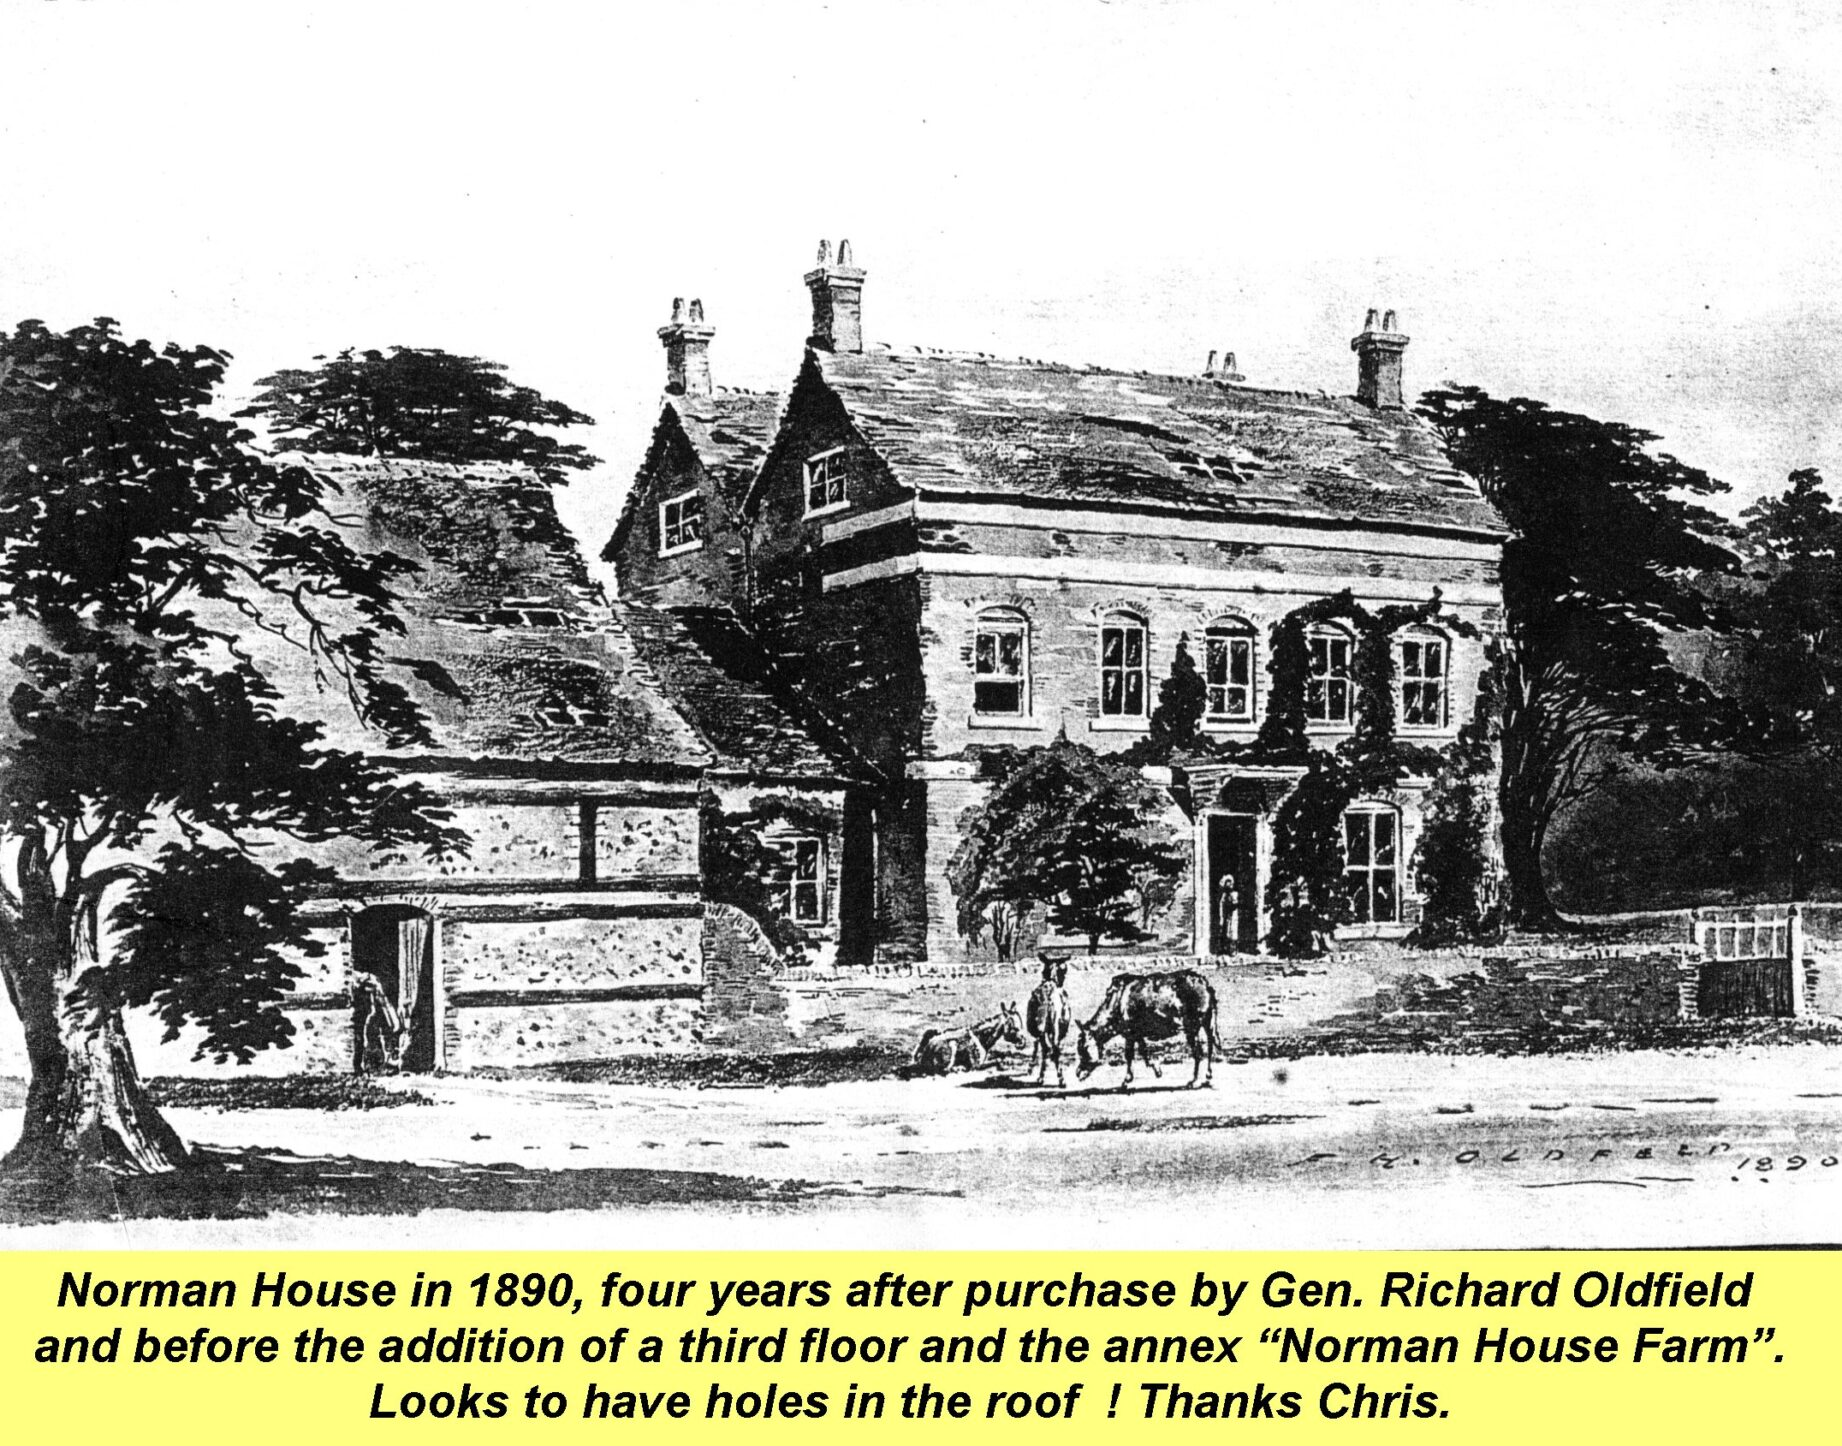 Westbourne Norman House 1890, Norman House 1890, Oldfield